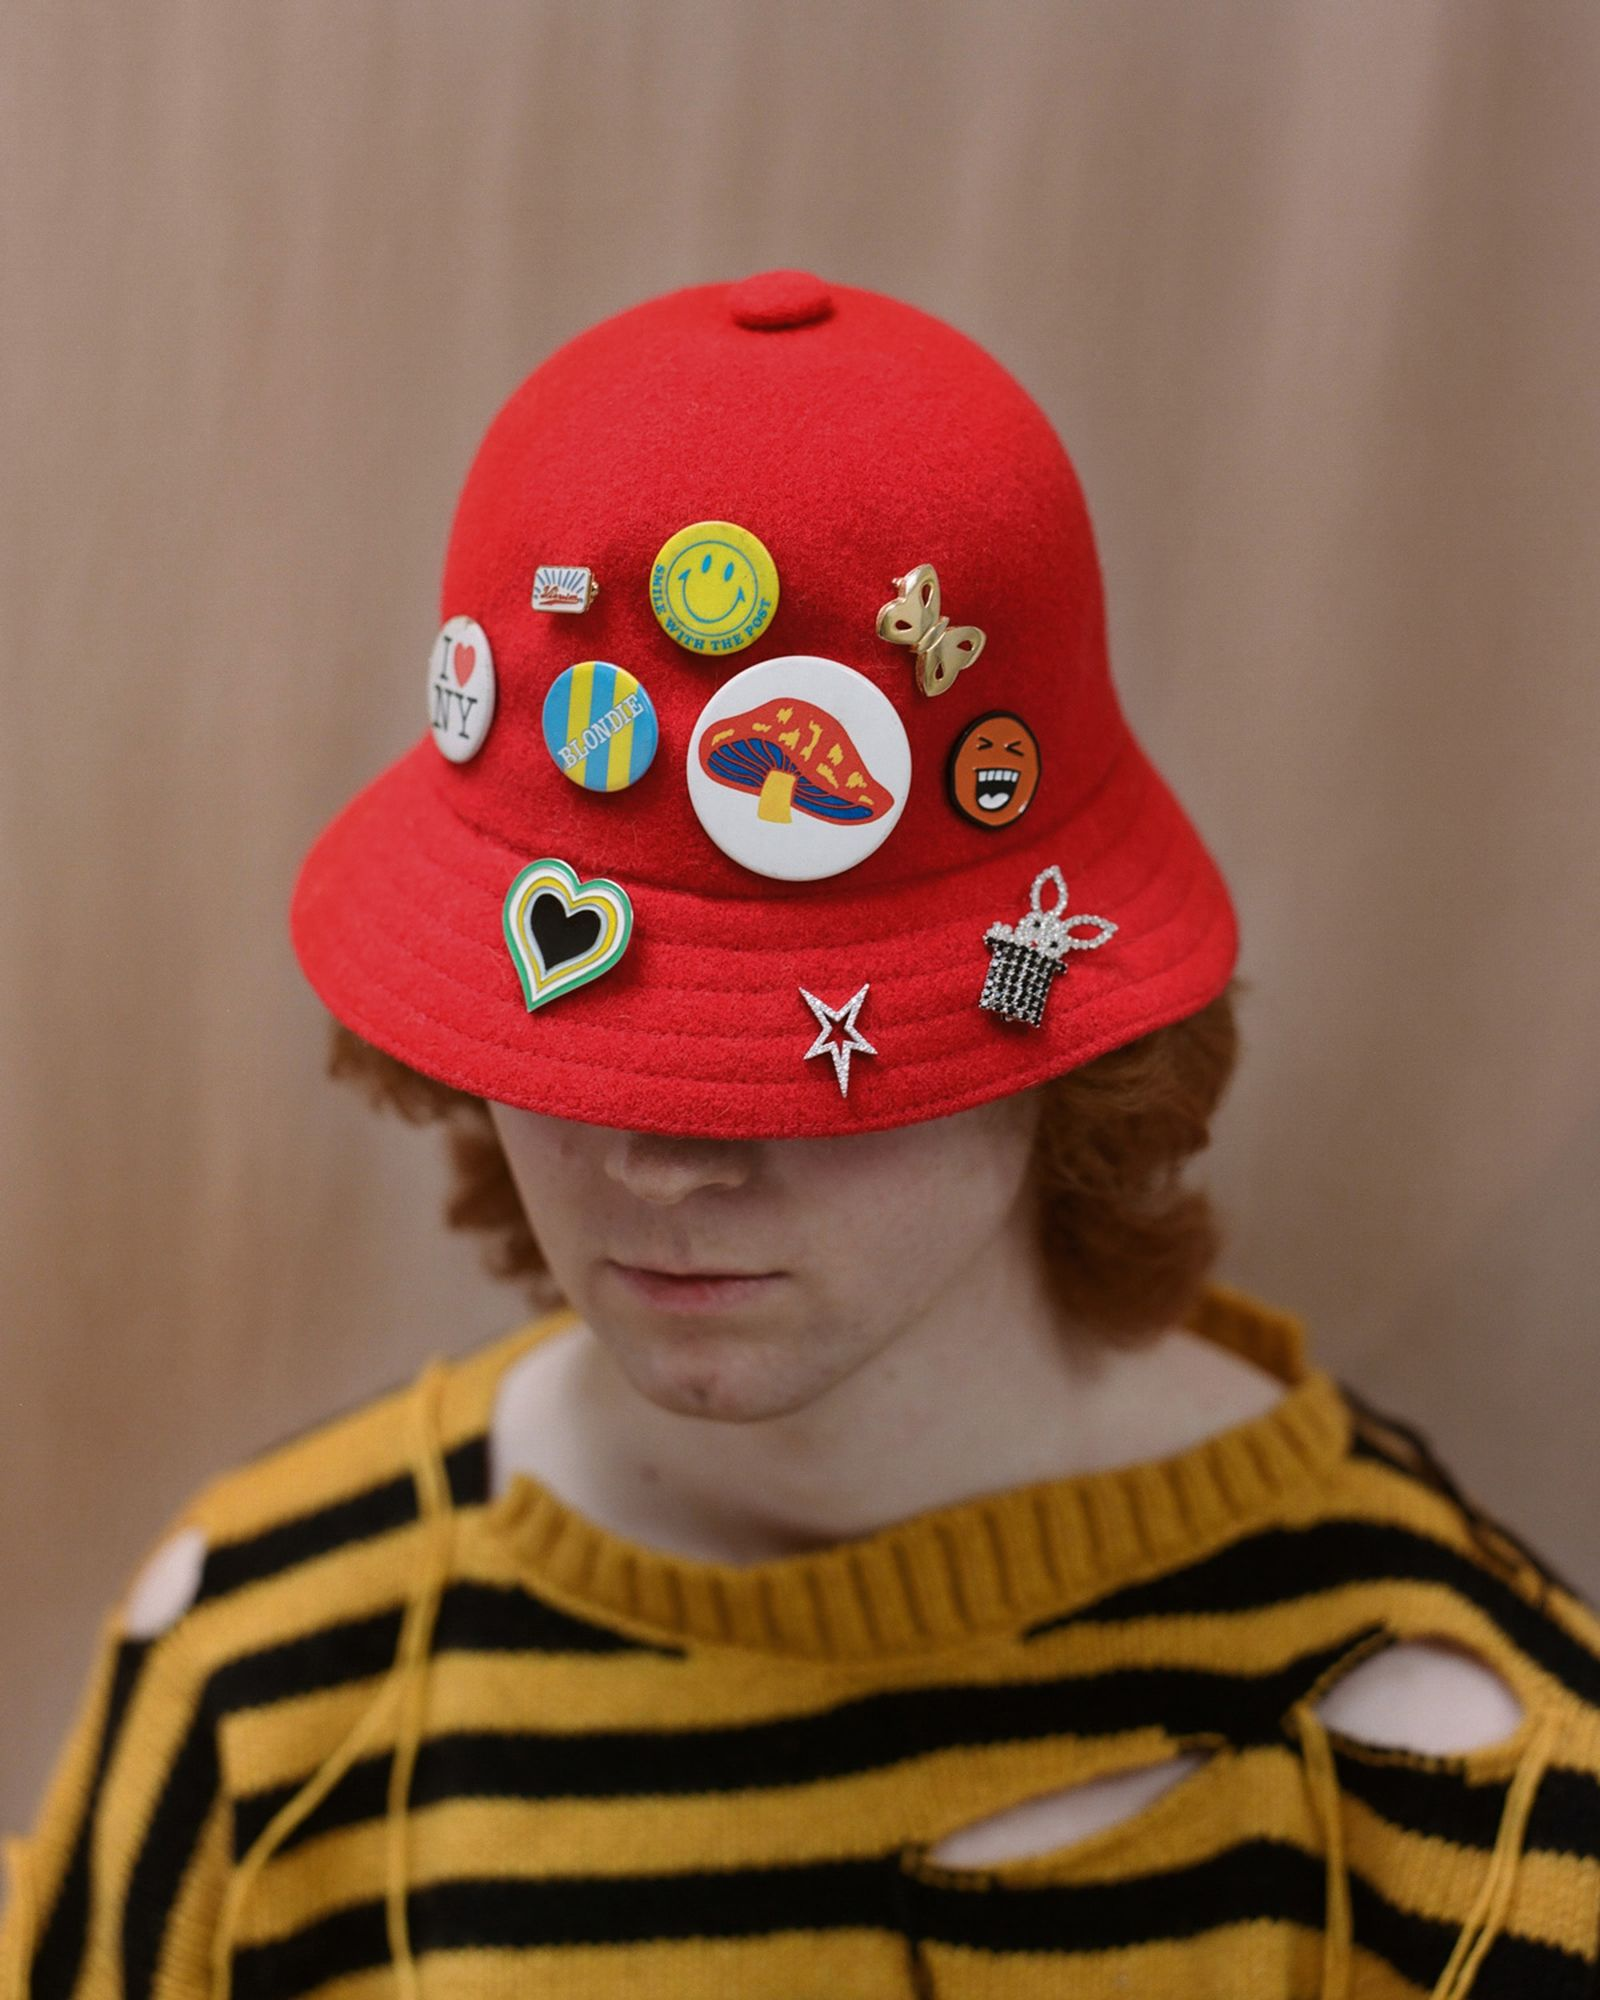 Sweater Charles Jeffrey Loverboy, Hat Kangol, (from left to right) I heart NY pin THE RUSTY PIN, Small enamel pin VISVIM from MR PORTER, Yellow smiley face pin THE RUSTY PIN, Butterfly brooch CONTEMPORARY WARDROBE, Orange smiley face pin DUO LTD, Blondie pin THE RUSTY PIN, Mushroom pin THE RUSTY PIN, Heart pin CONTEMPORARY WARDROBE, Star Earring ALAN CROCETTI, Rabbit in a hat brooch ART SCHOOL from MATCHES UK